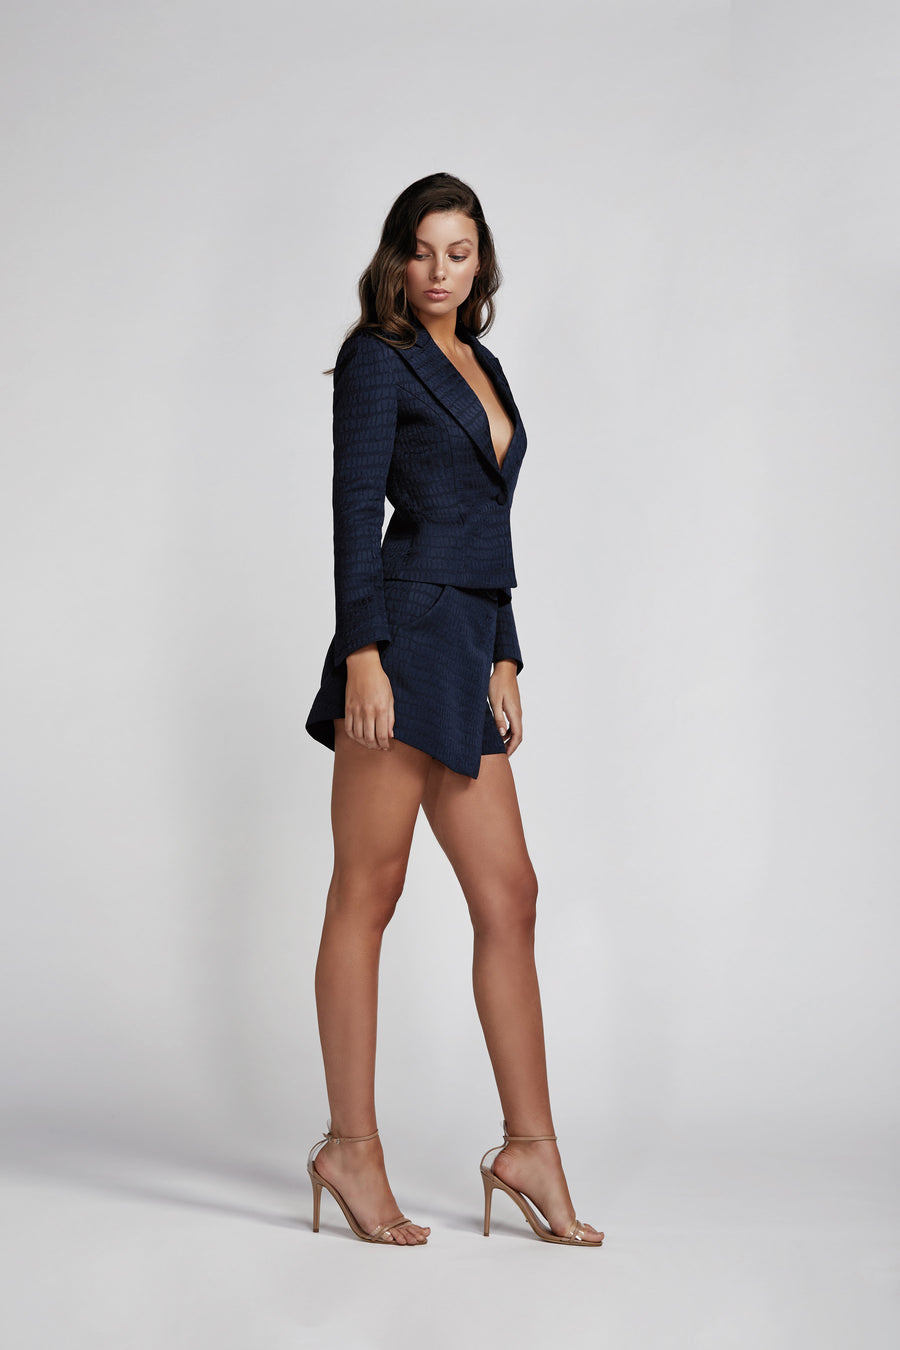 Esmeralda Single Breasted Jacket - Navy